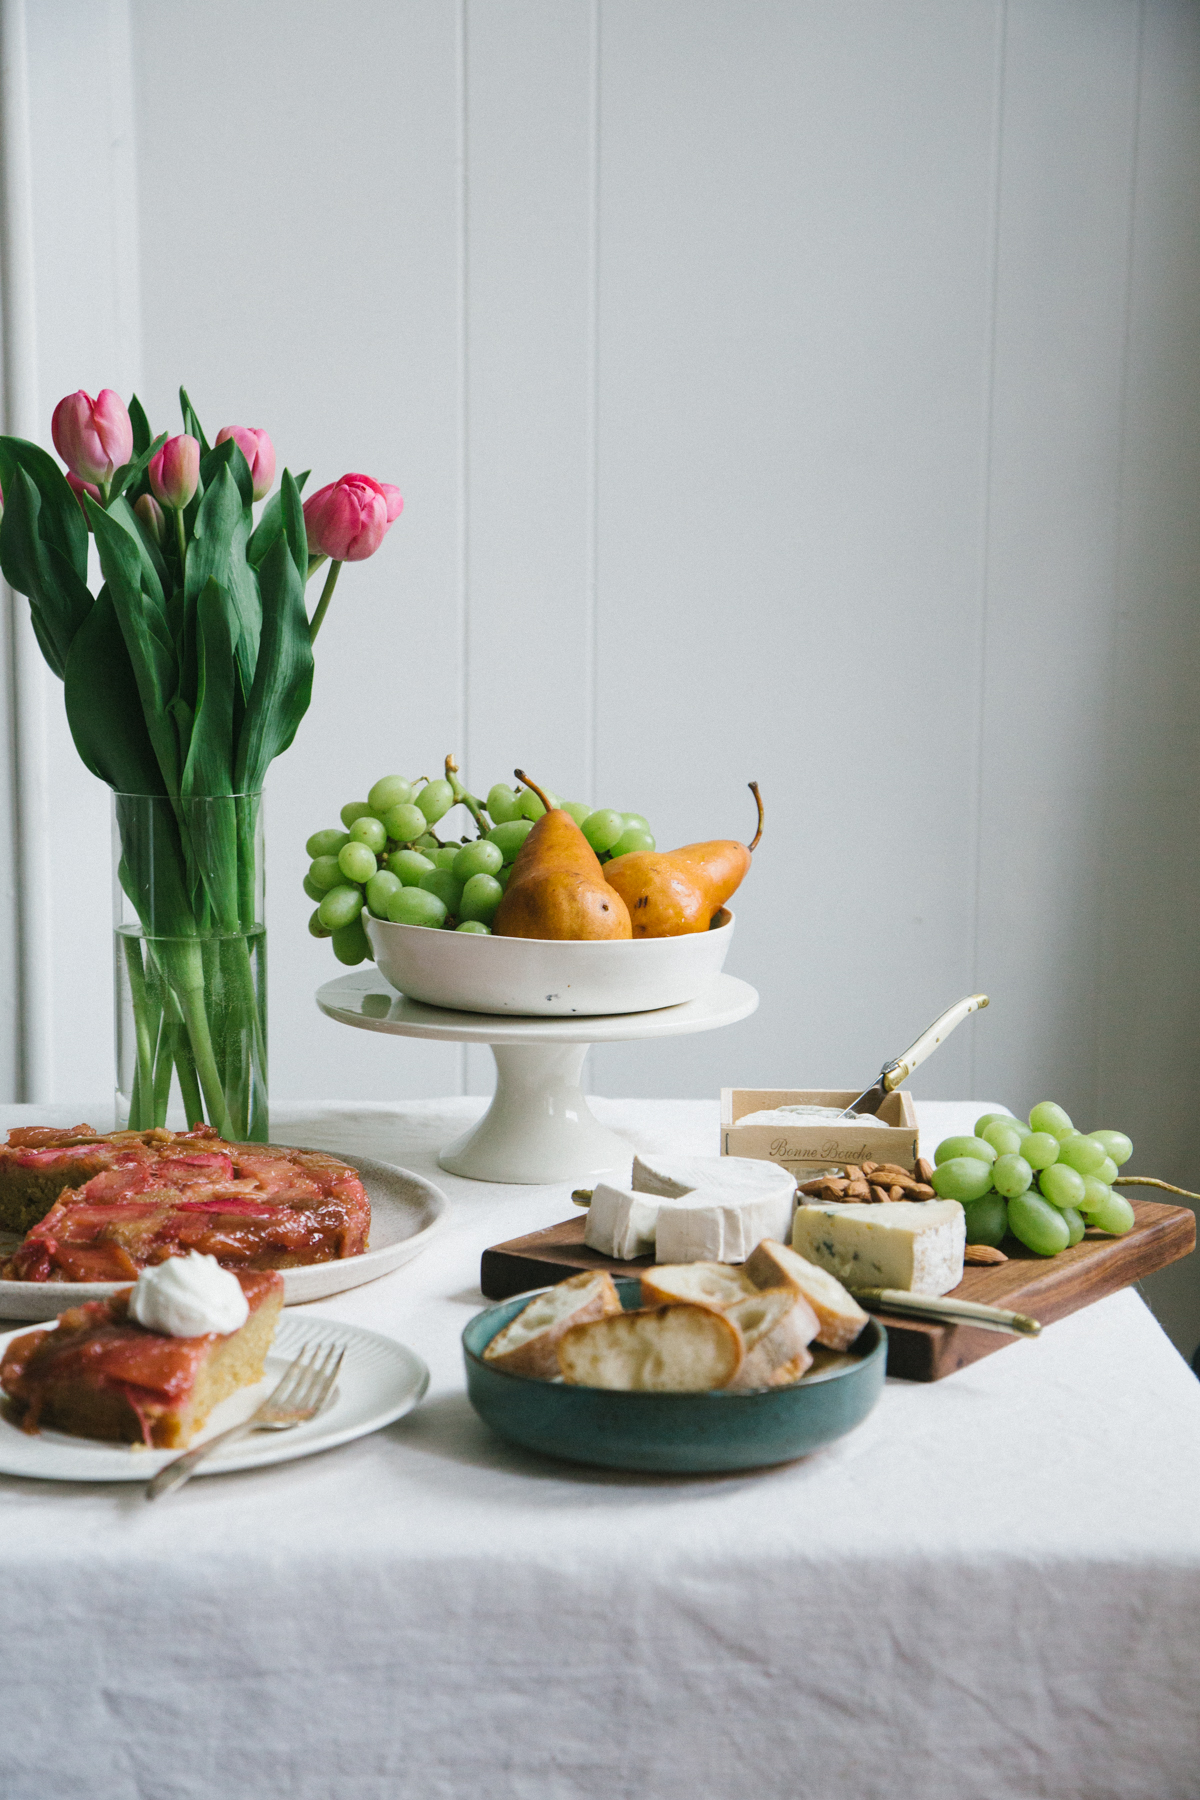 spring potluck with whole foods market and instacart | apt 2b baking co